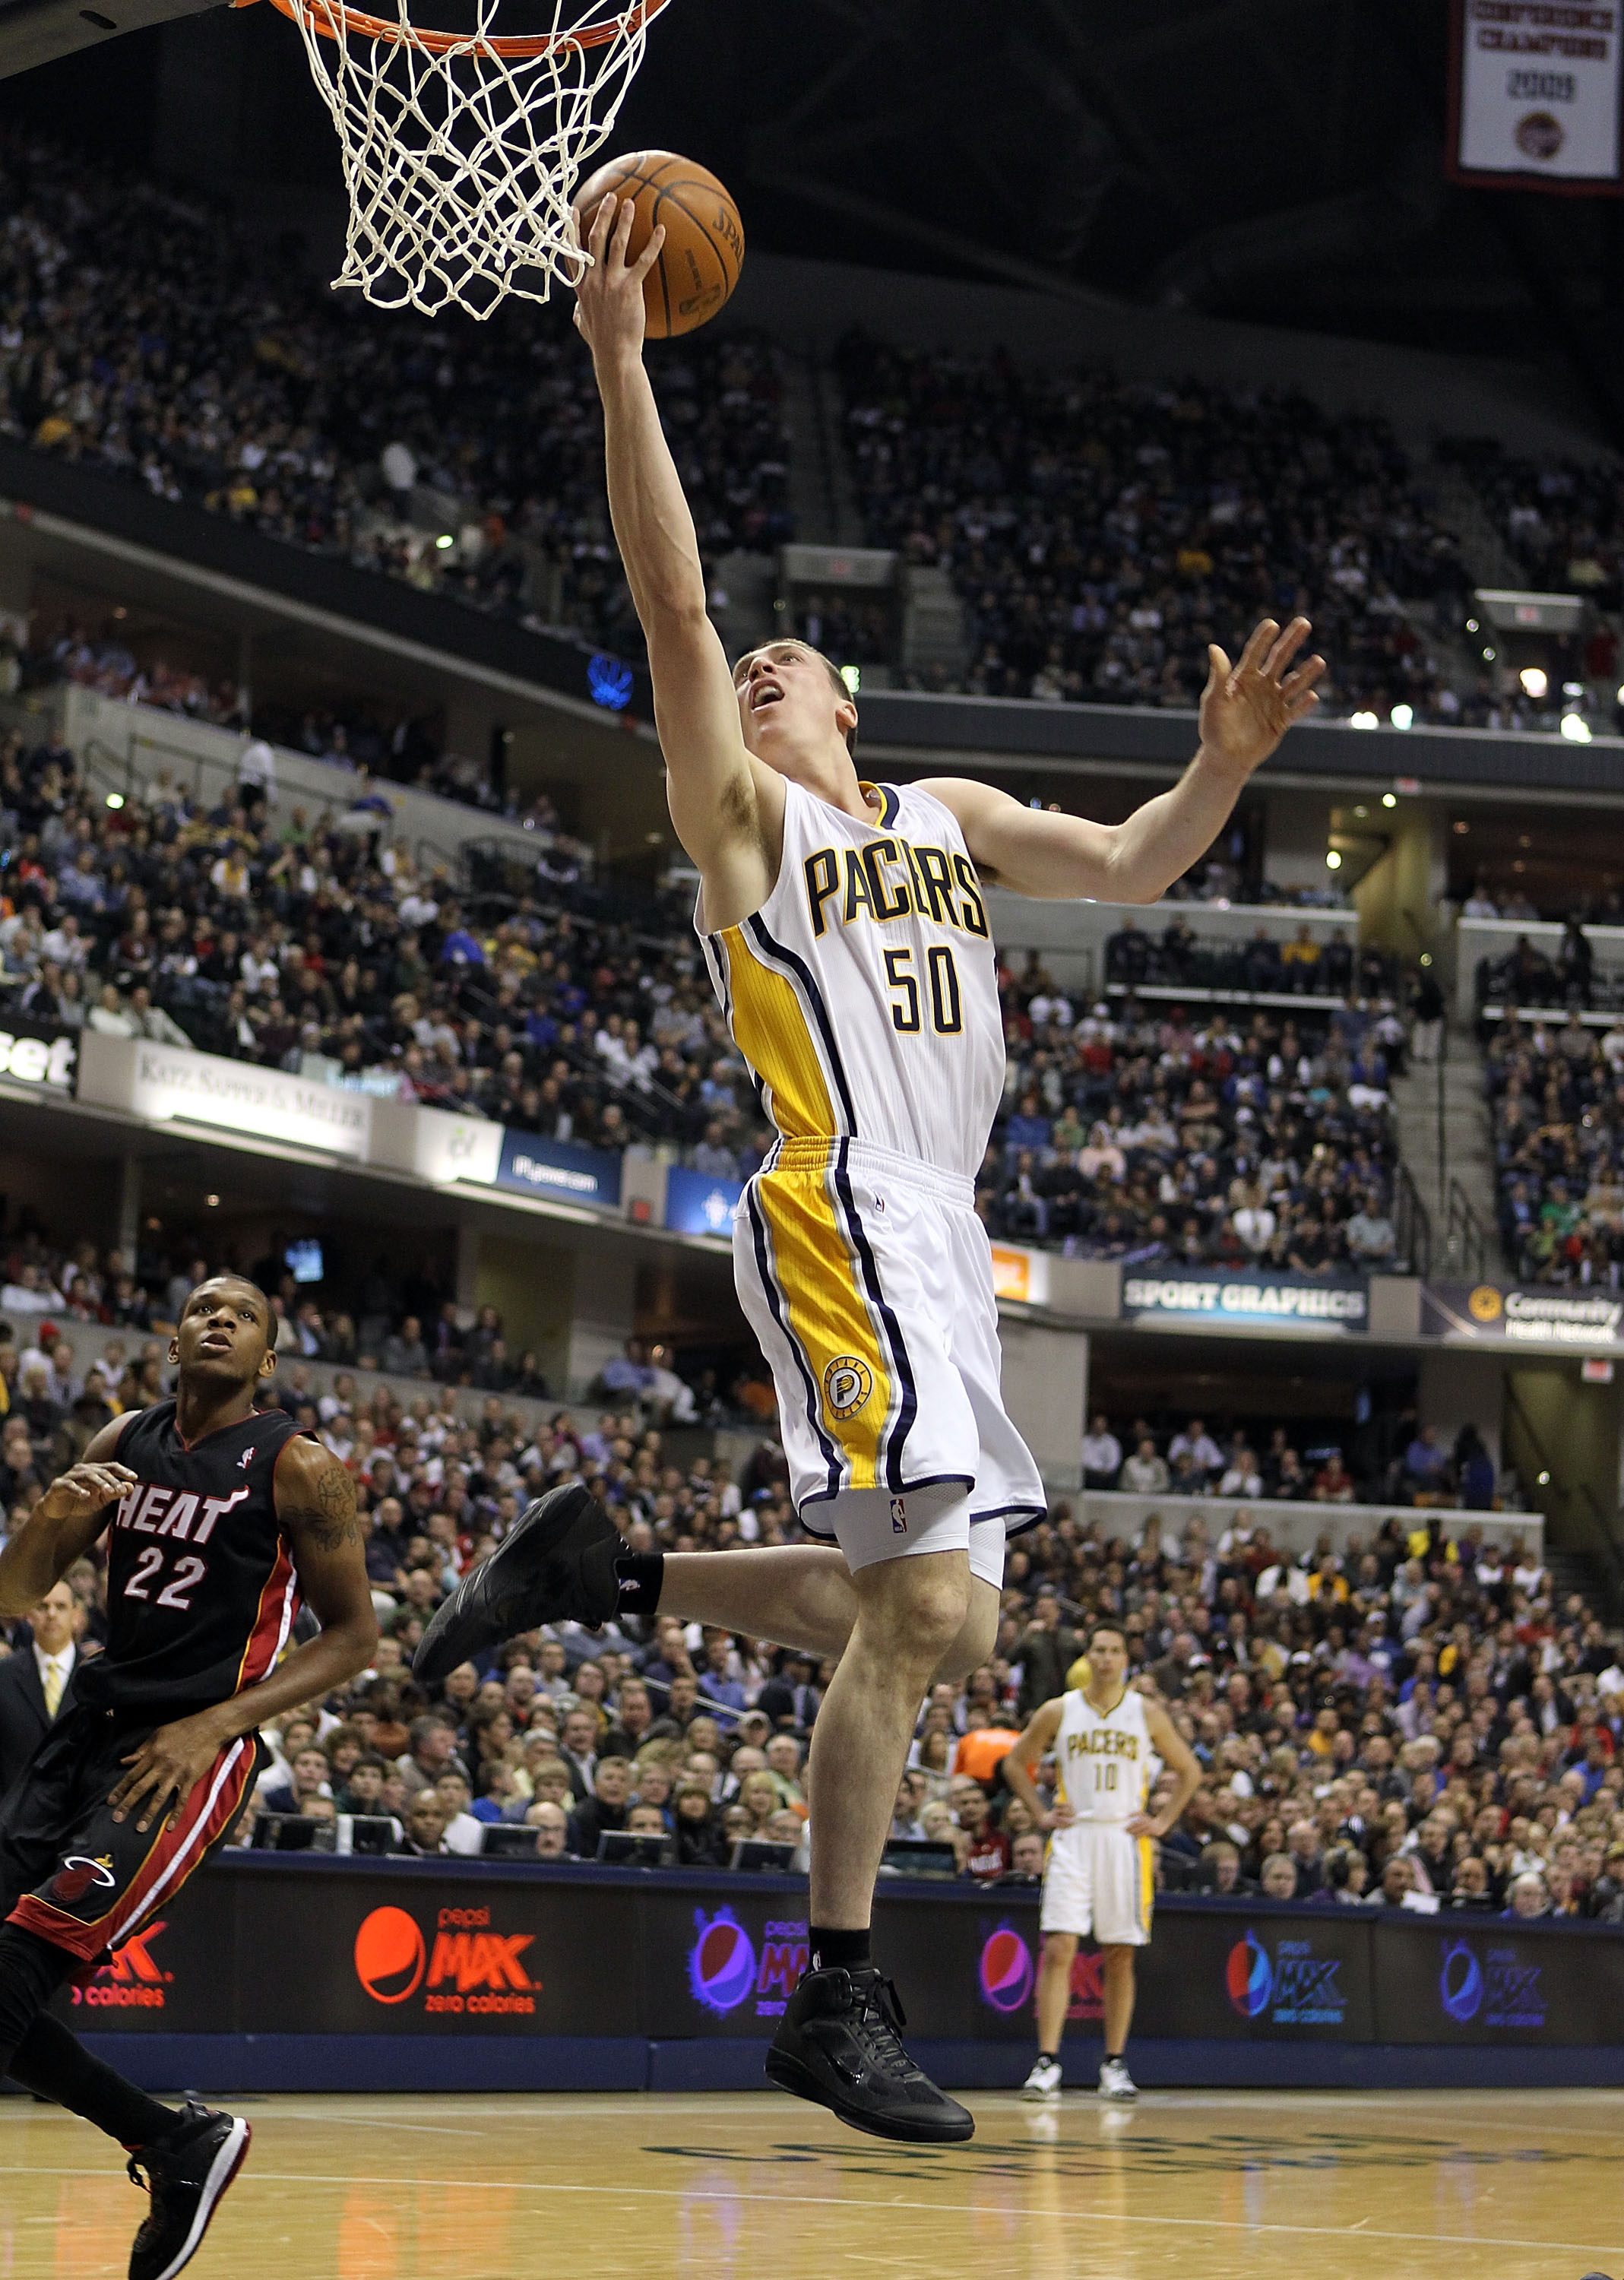 INDIANAPOLIS - FEBRUARY 15:  Tyler Hansbrough #50 of the Indiana Pacers shoots the ball during the NBA game against the  Miami Heat at Conseco Fieldhouse on February 15, 2011 in Indianapolis, Indiana.   NOTE TO USER: User expressly acknowledges and agrees